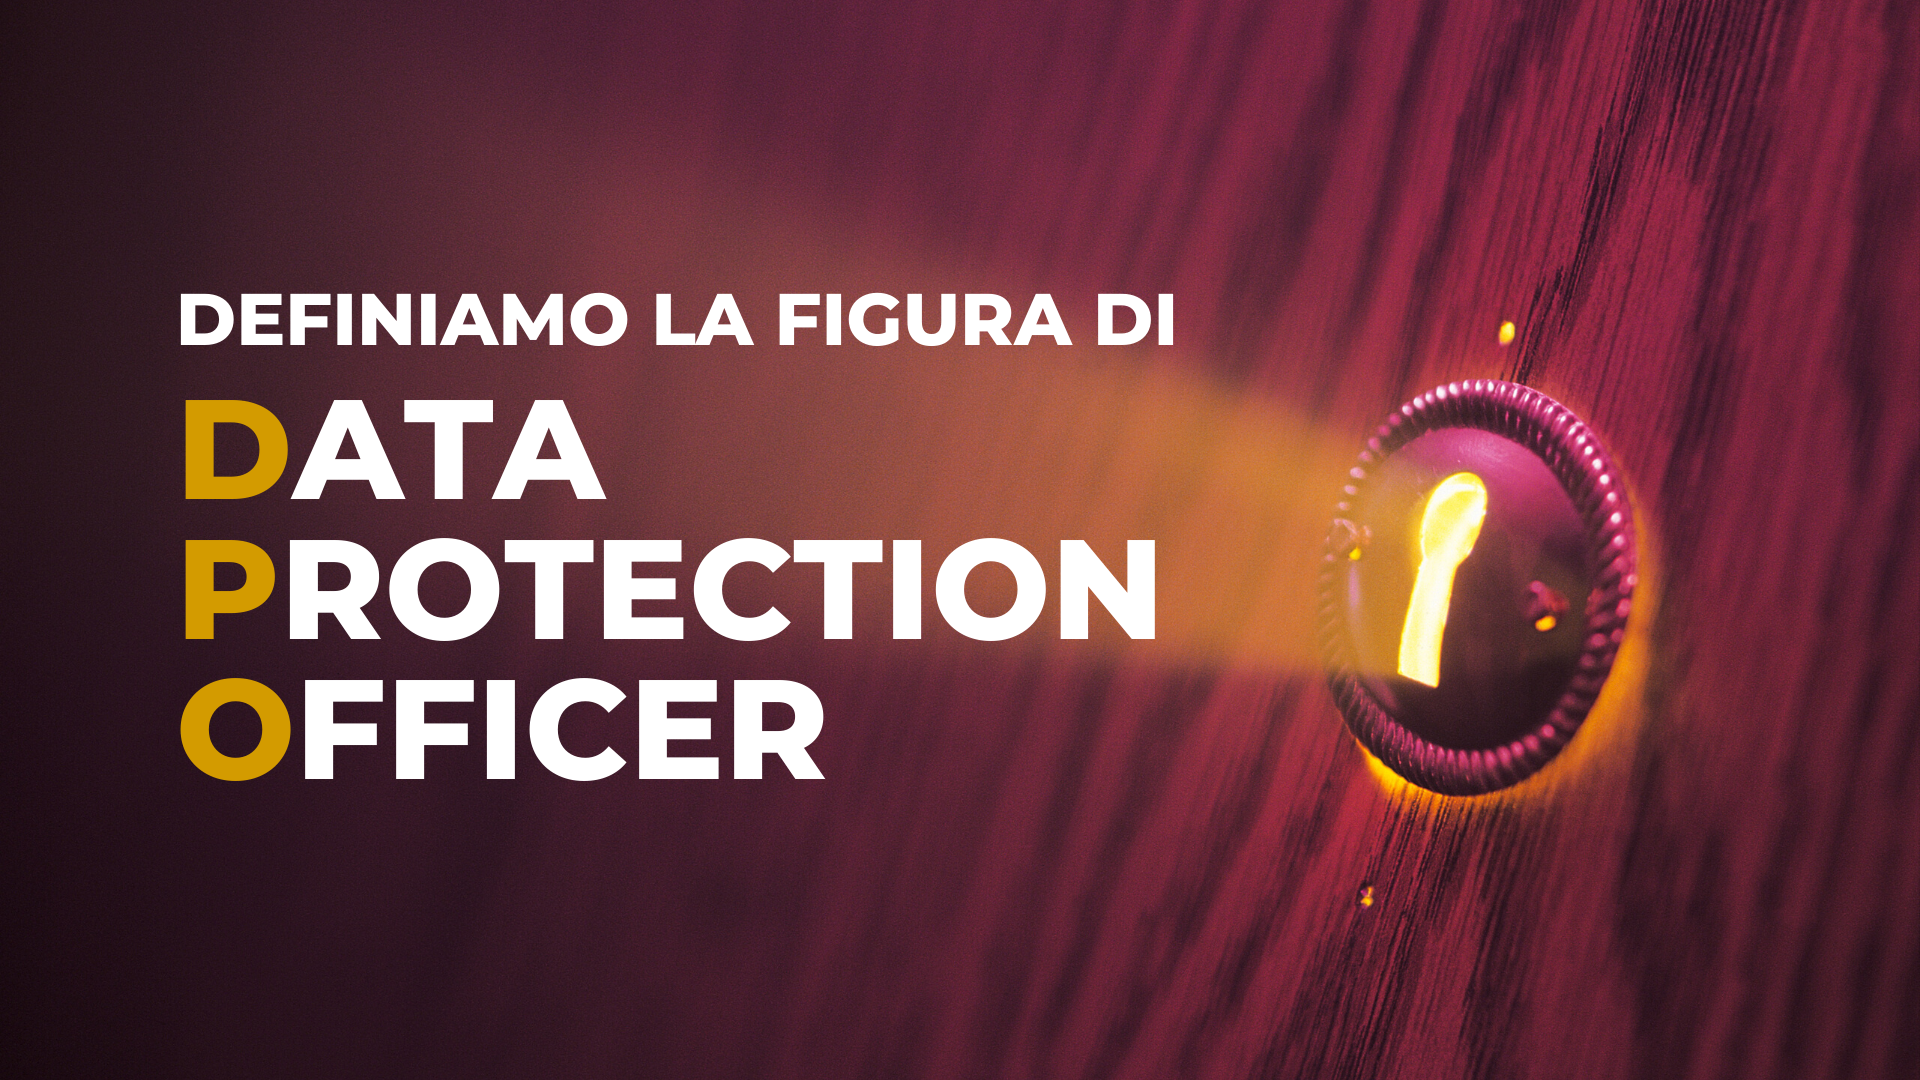 Definiamo la figura di Data Protection Officer